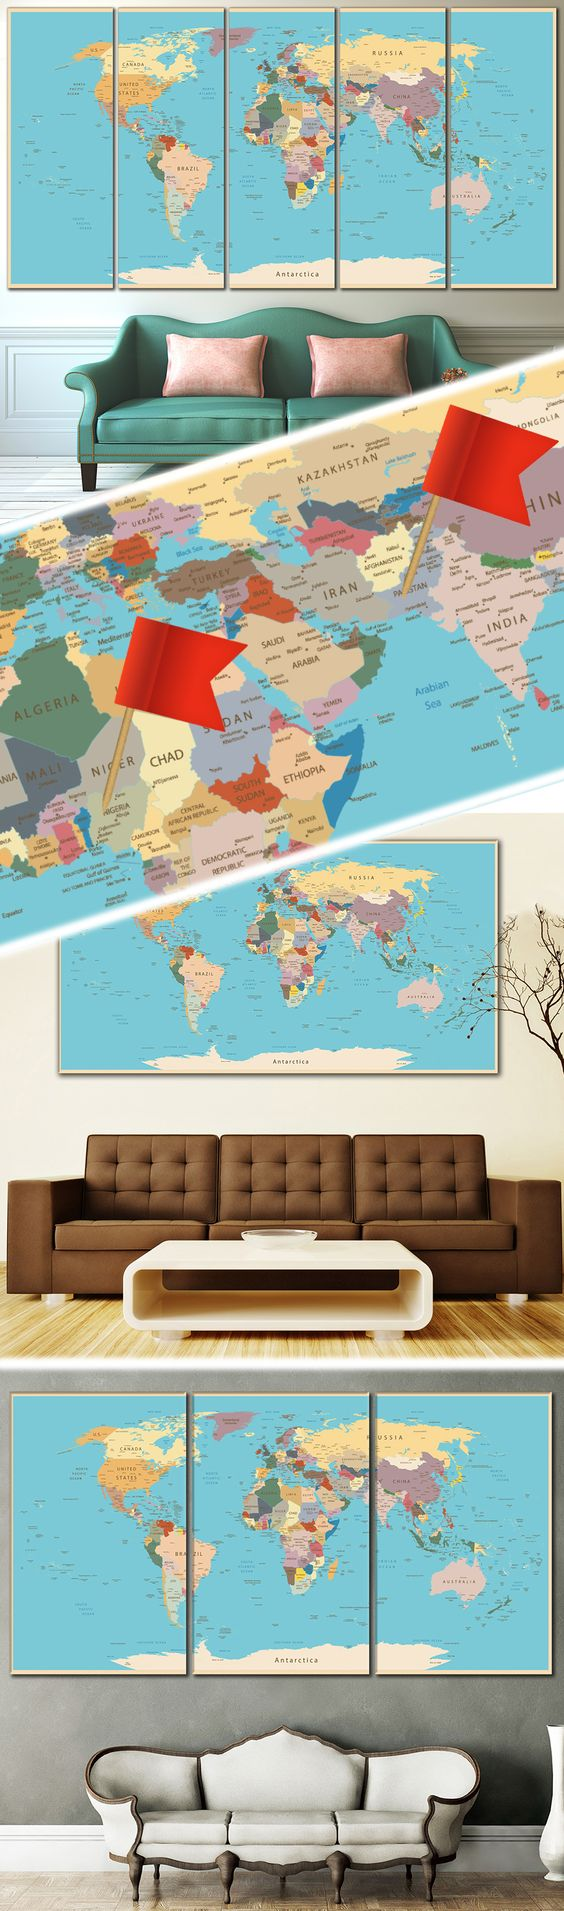 Push pin world map 807 canvas print office walls creative world map canvas prints wall art for large home or office wall decoration sale gumiabroncs Gallery